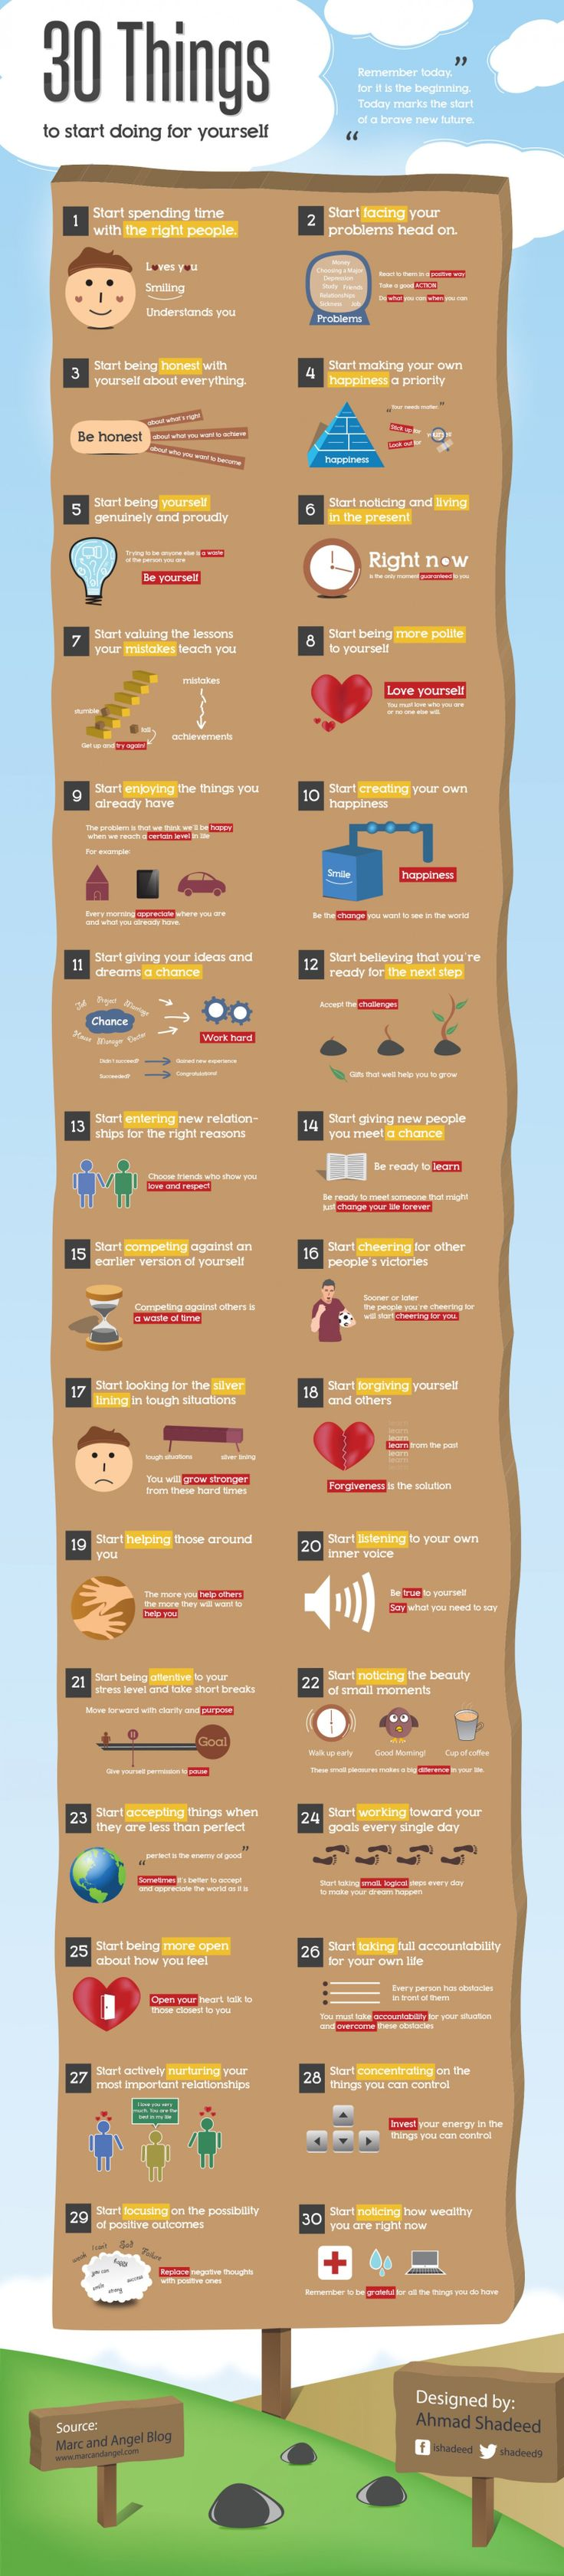 From http://visual.ly/30-things-start-doing-yourself?utm_source=visually_embed